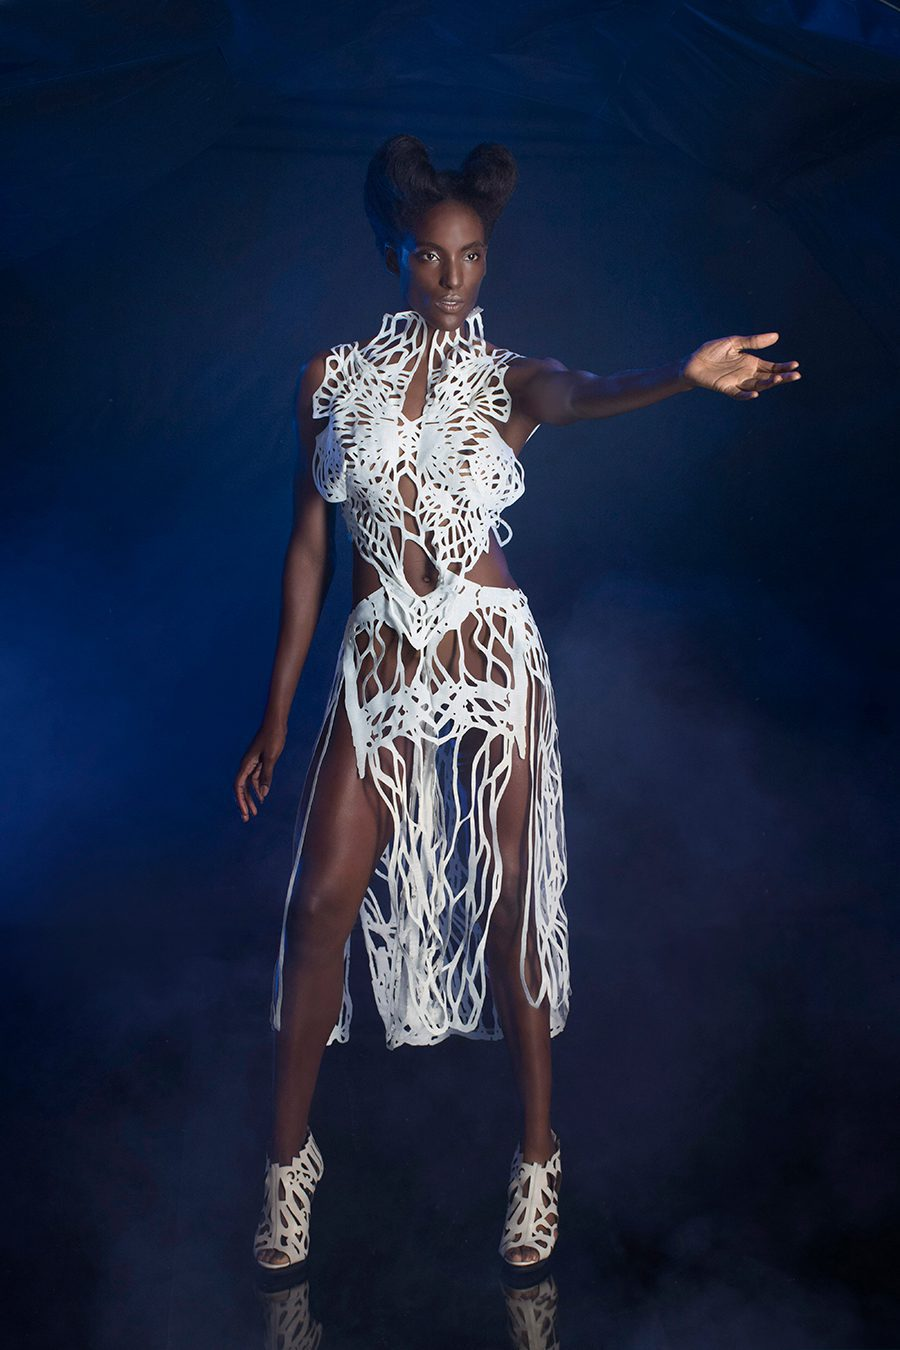 2017_1788-Designer-Amy-Karle-Model-Amber-Rosario-wearing-dress-based-on-ligaments-v2-from-Internal-Collection-_-photographer-Christyl-OFlaherty